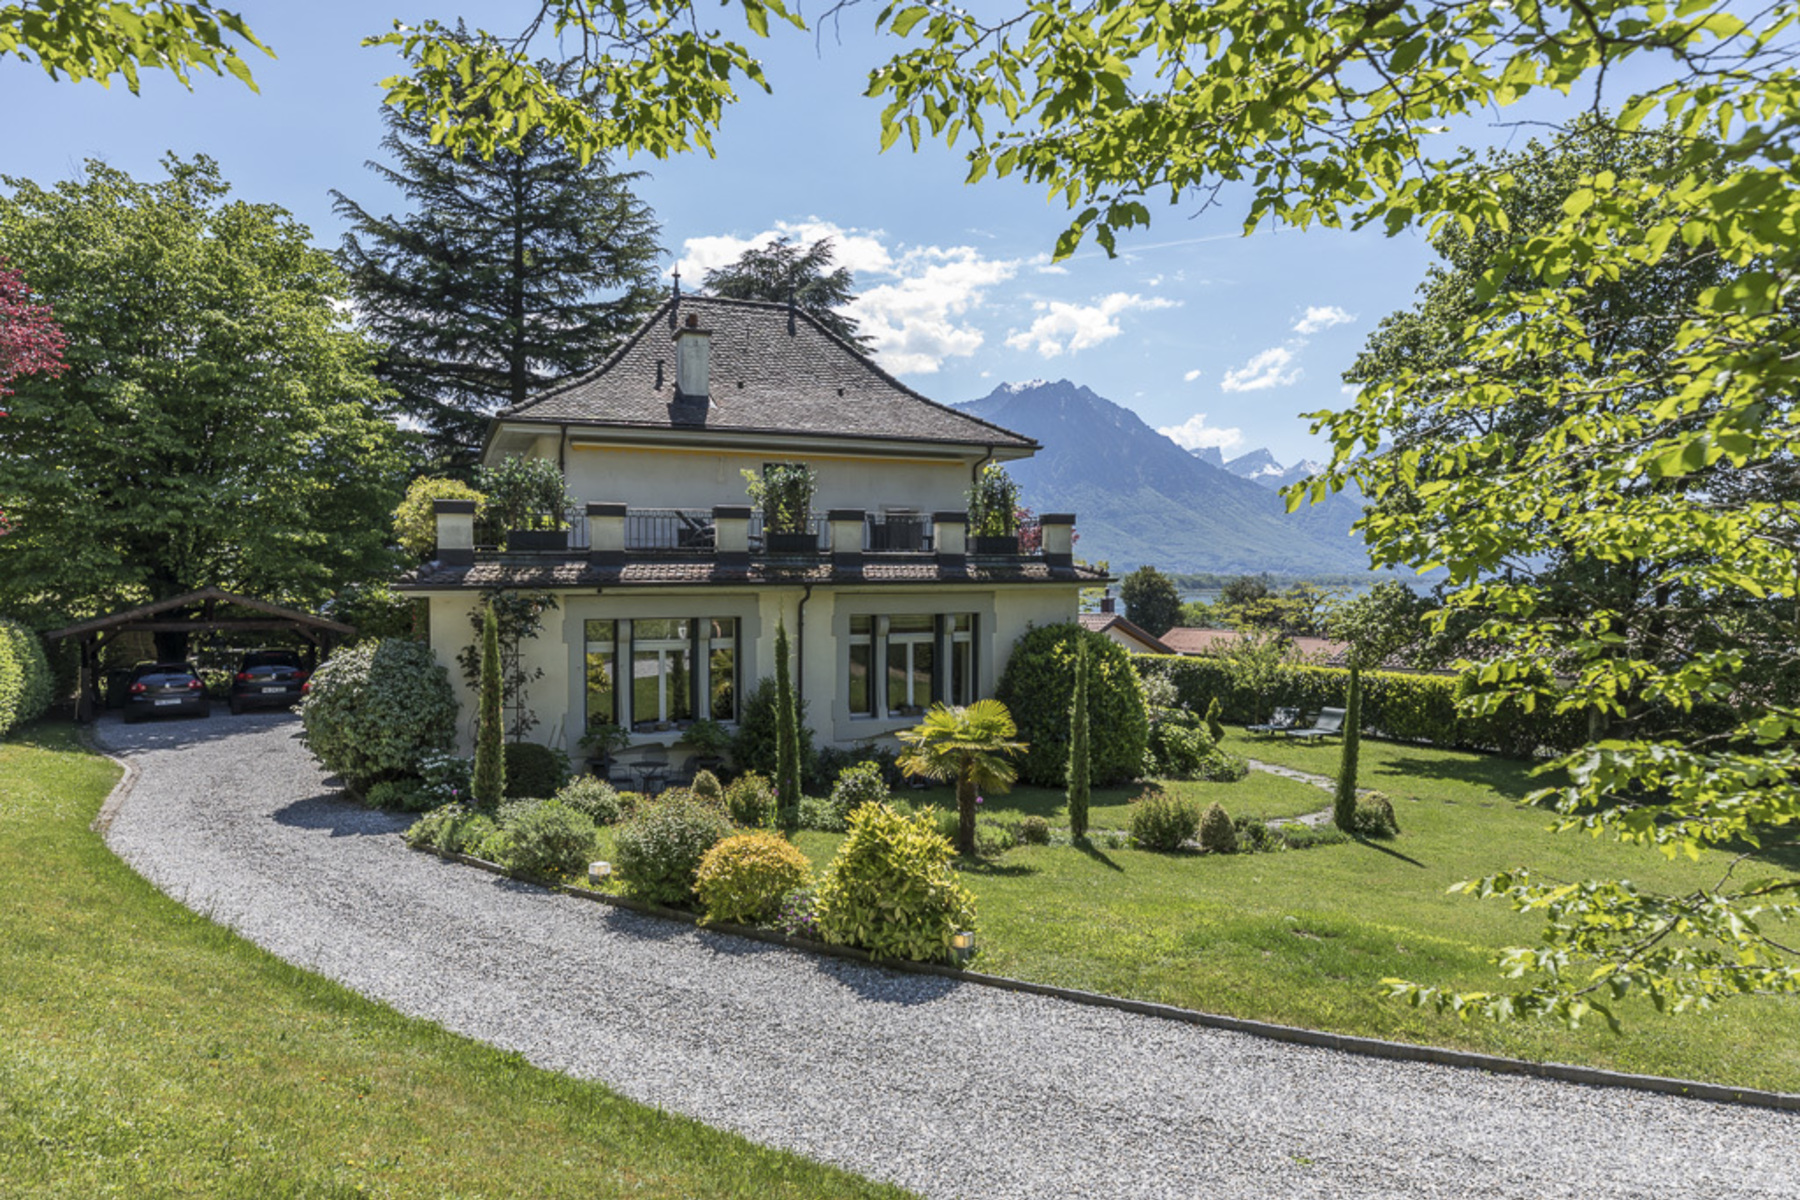 Vivienda unifamiliar por un Venta en Sumptuous mansion with undeniable charm, just a stone's throw from lake Villeneuve Villeneuve Vd, Vaud, 1844 Suiza